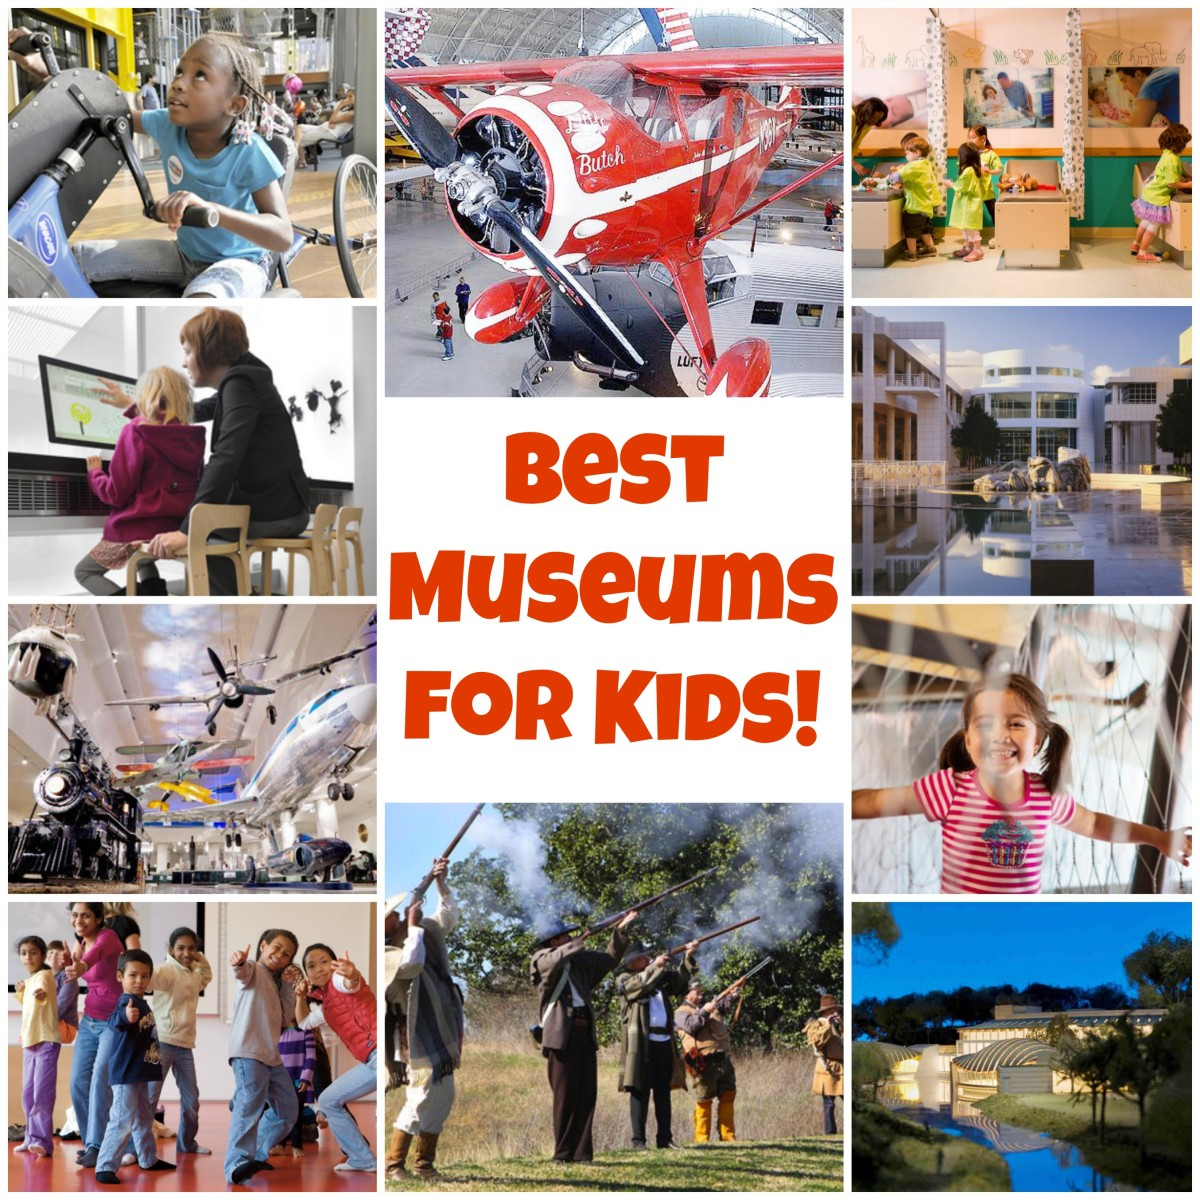 Plan a trip your family won't forget to one of the best museums for kids in the U.S.!